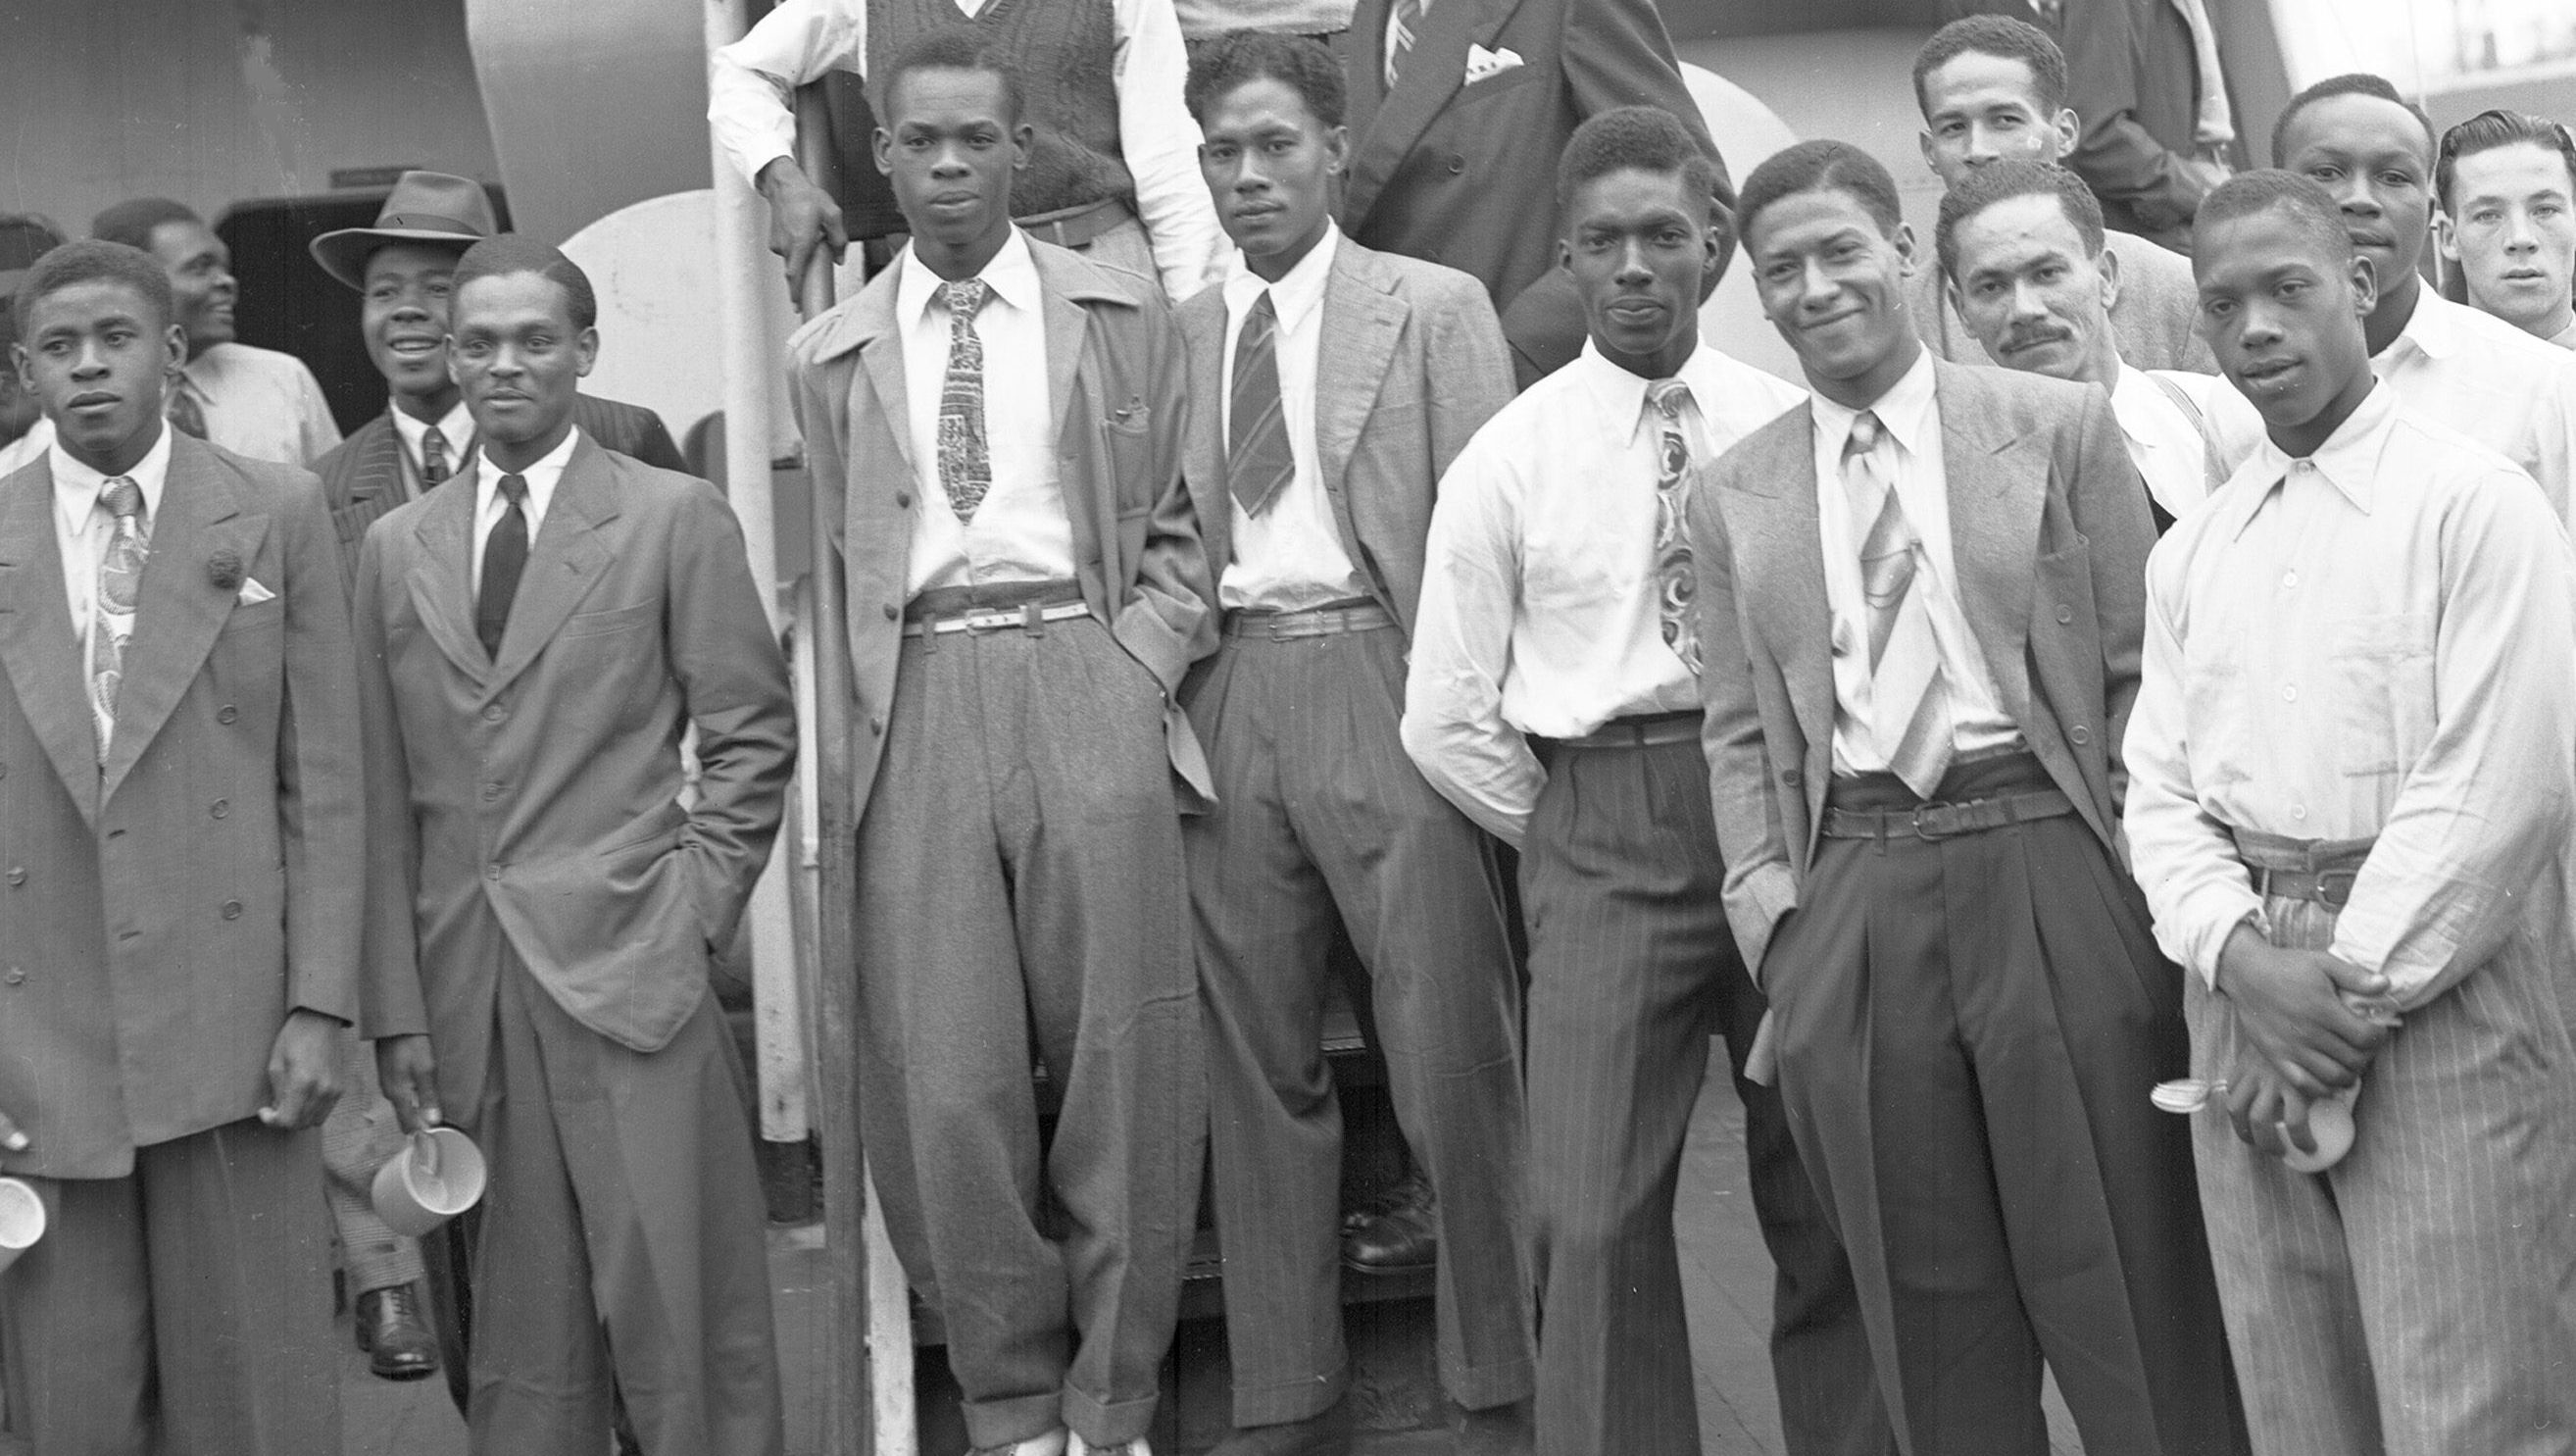 Some of the Jamaican men, mostly ex Royal Air Force servicemen, aboard the former troopship, S.S. Empire Windrush, before disembarking at Tilbury Docks, England, on June 22, 1948. They have come to Britain seeking employment.